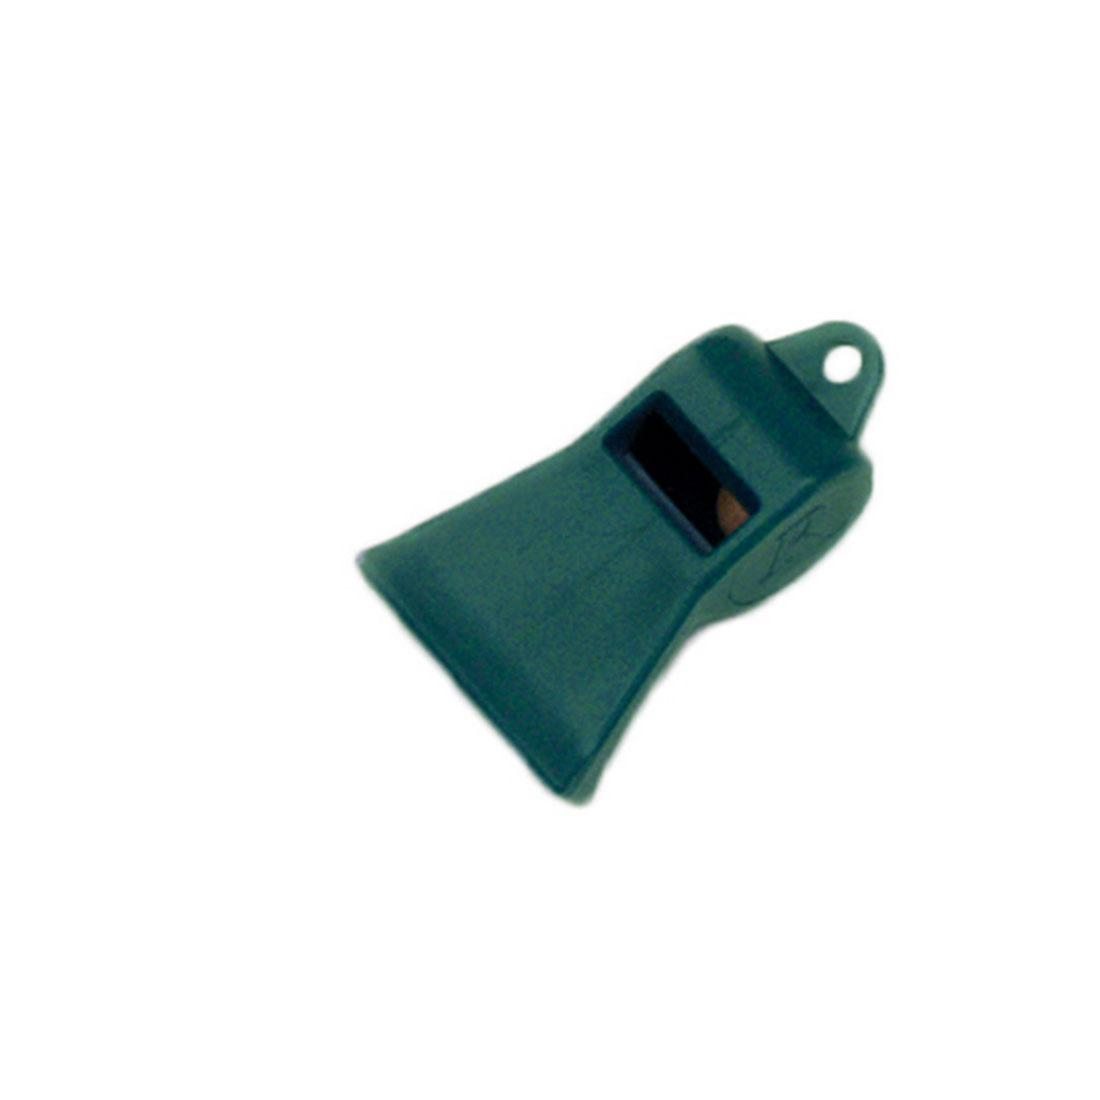 Remington Whistle with Pea for Dogs